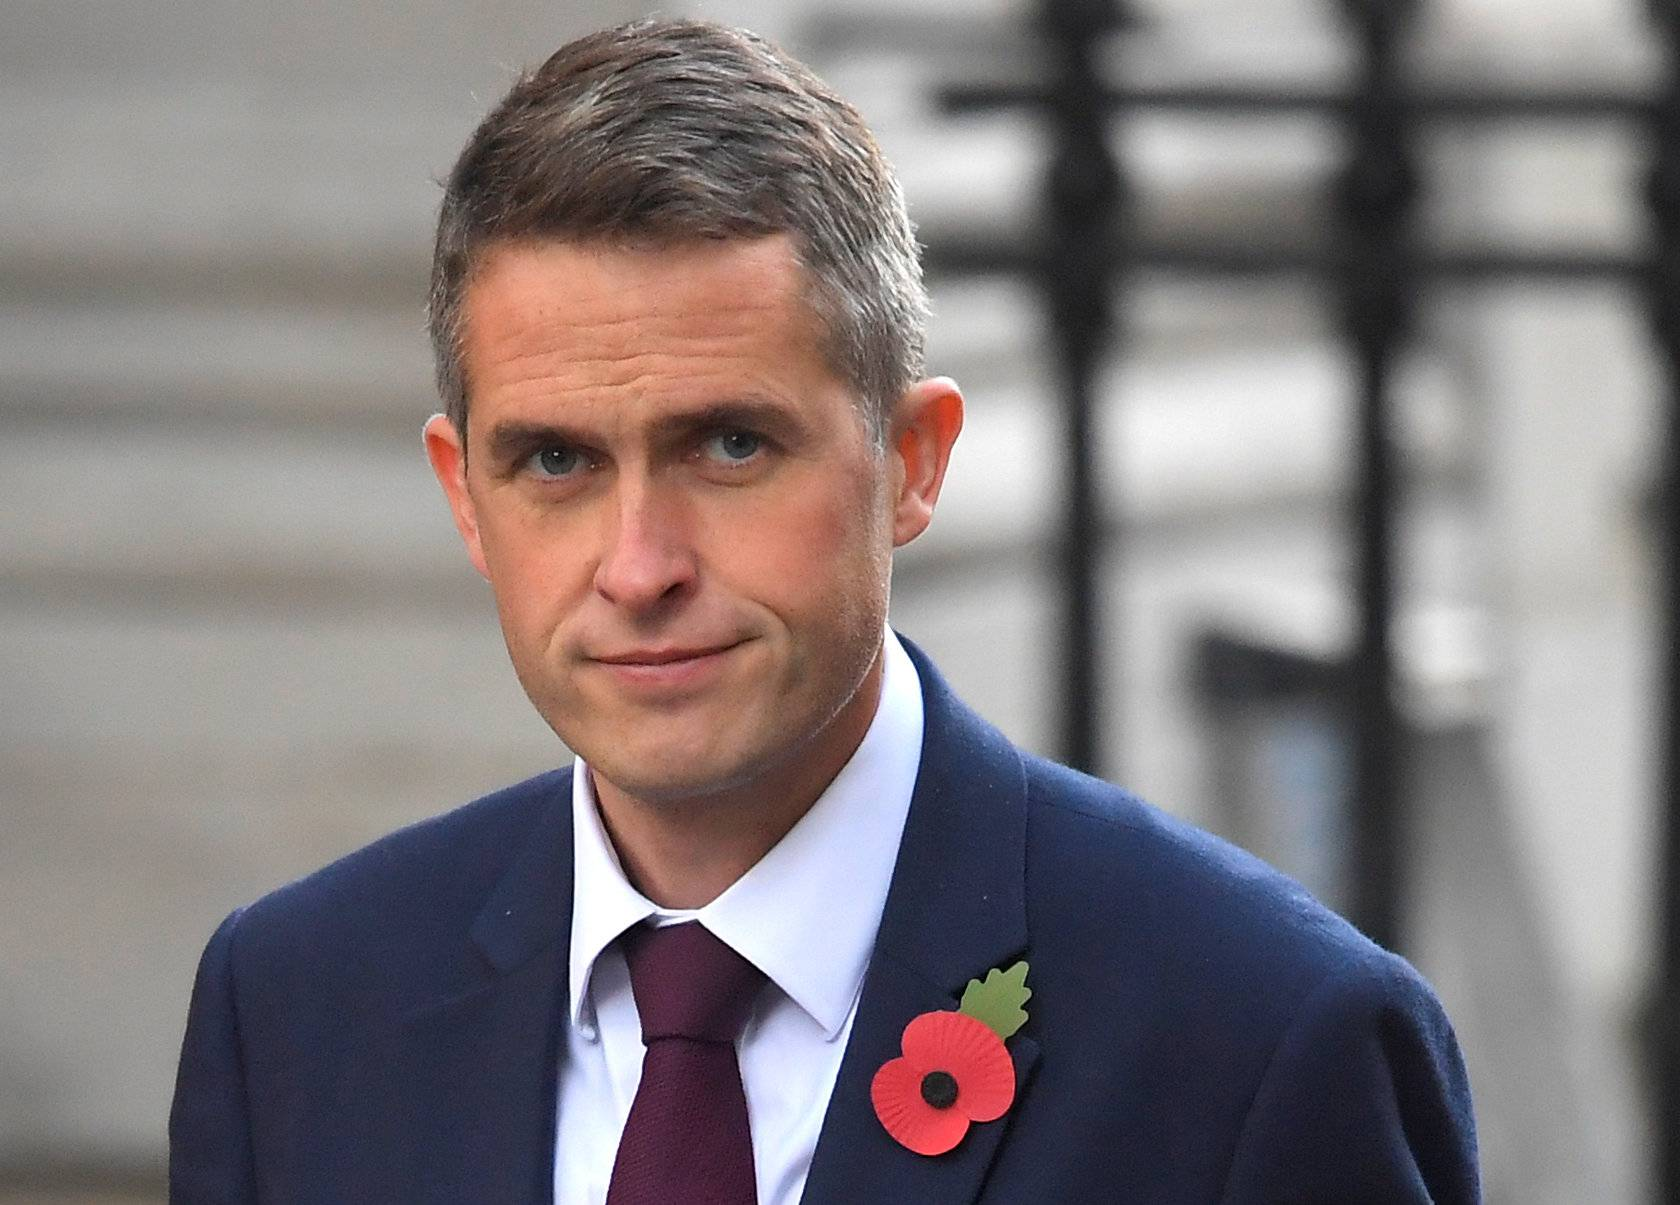 Britain's Secretary of State for Defence Gavin Williamson is seen in Downing Street, London